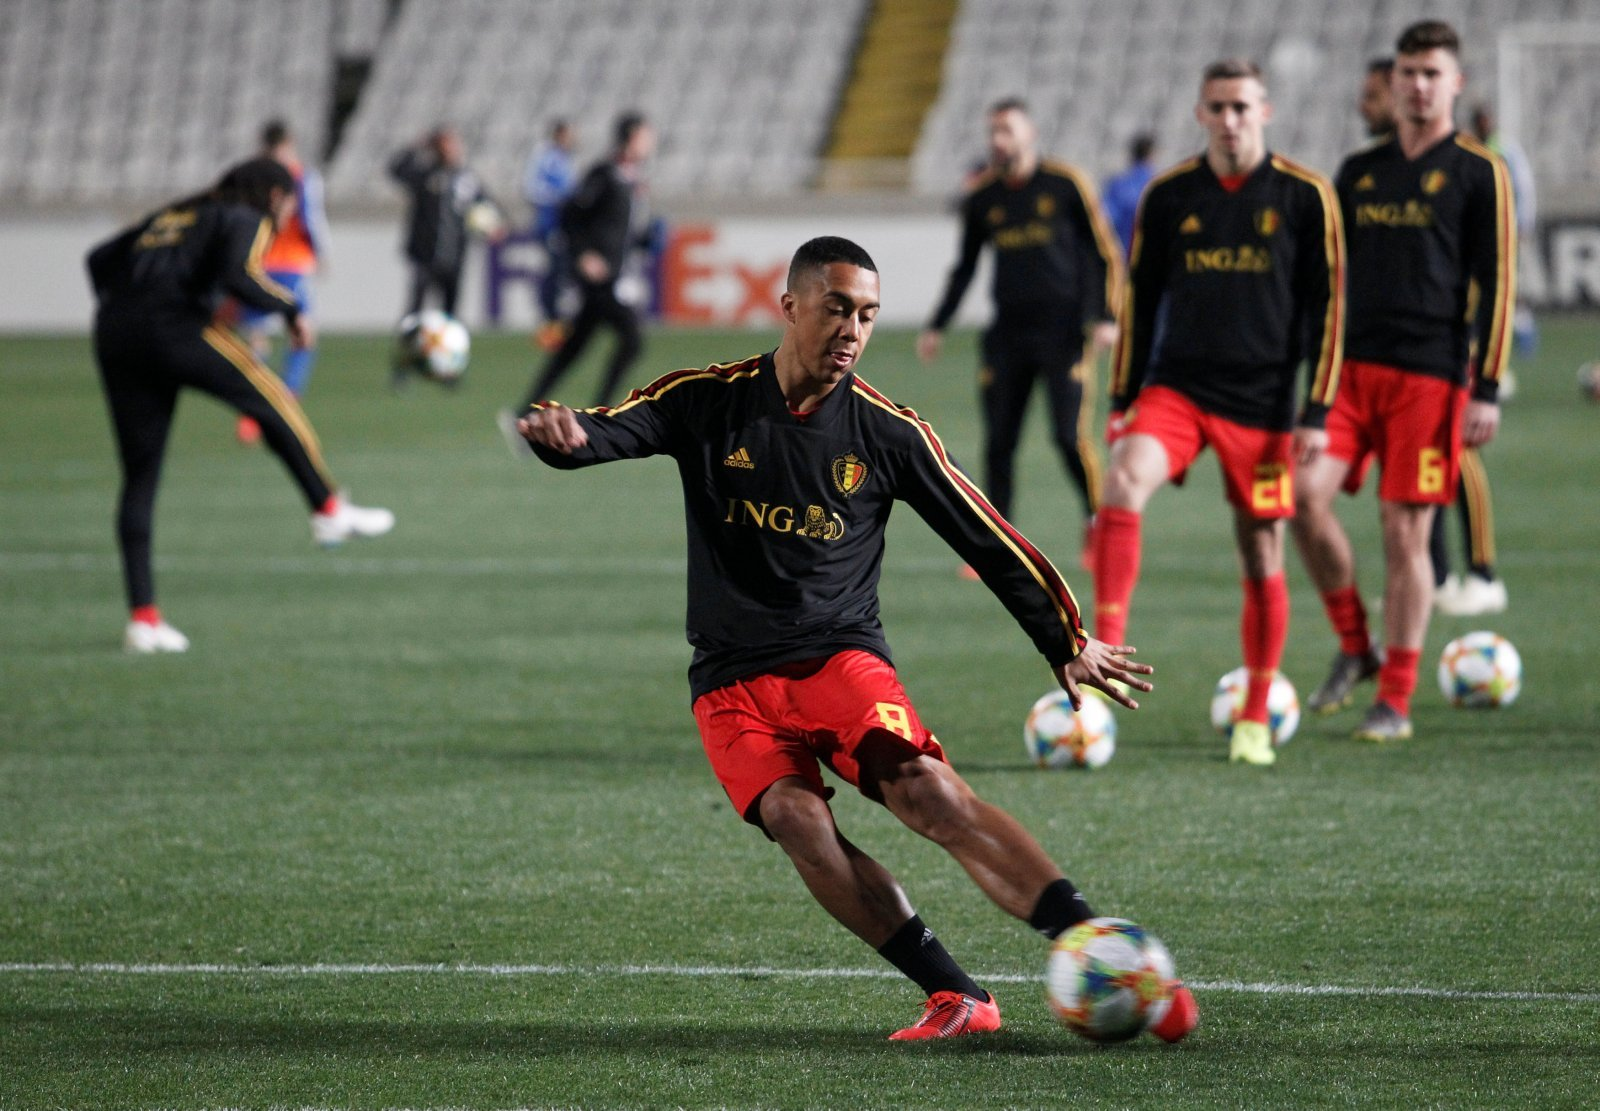 Leicester City: Tielemans rejected big clubs to join Leicester